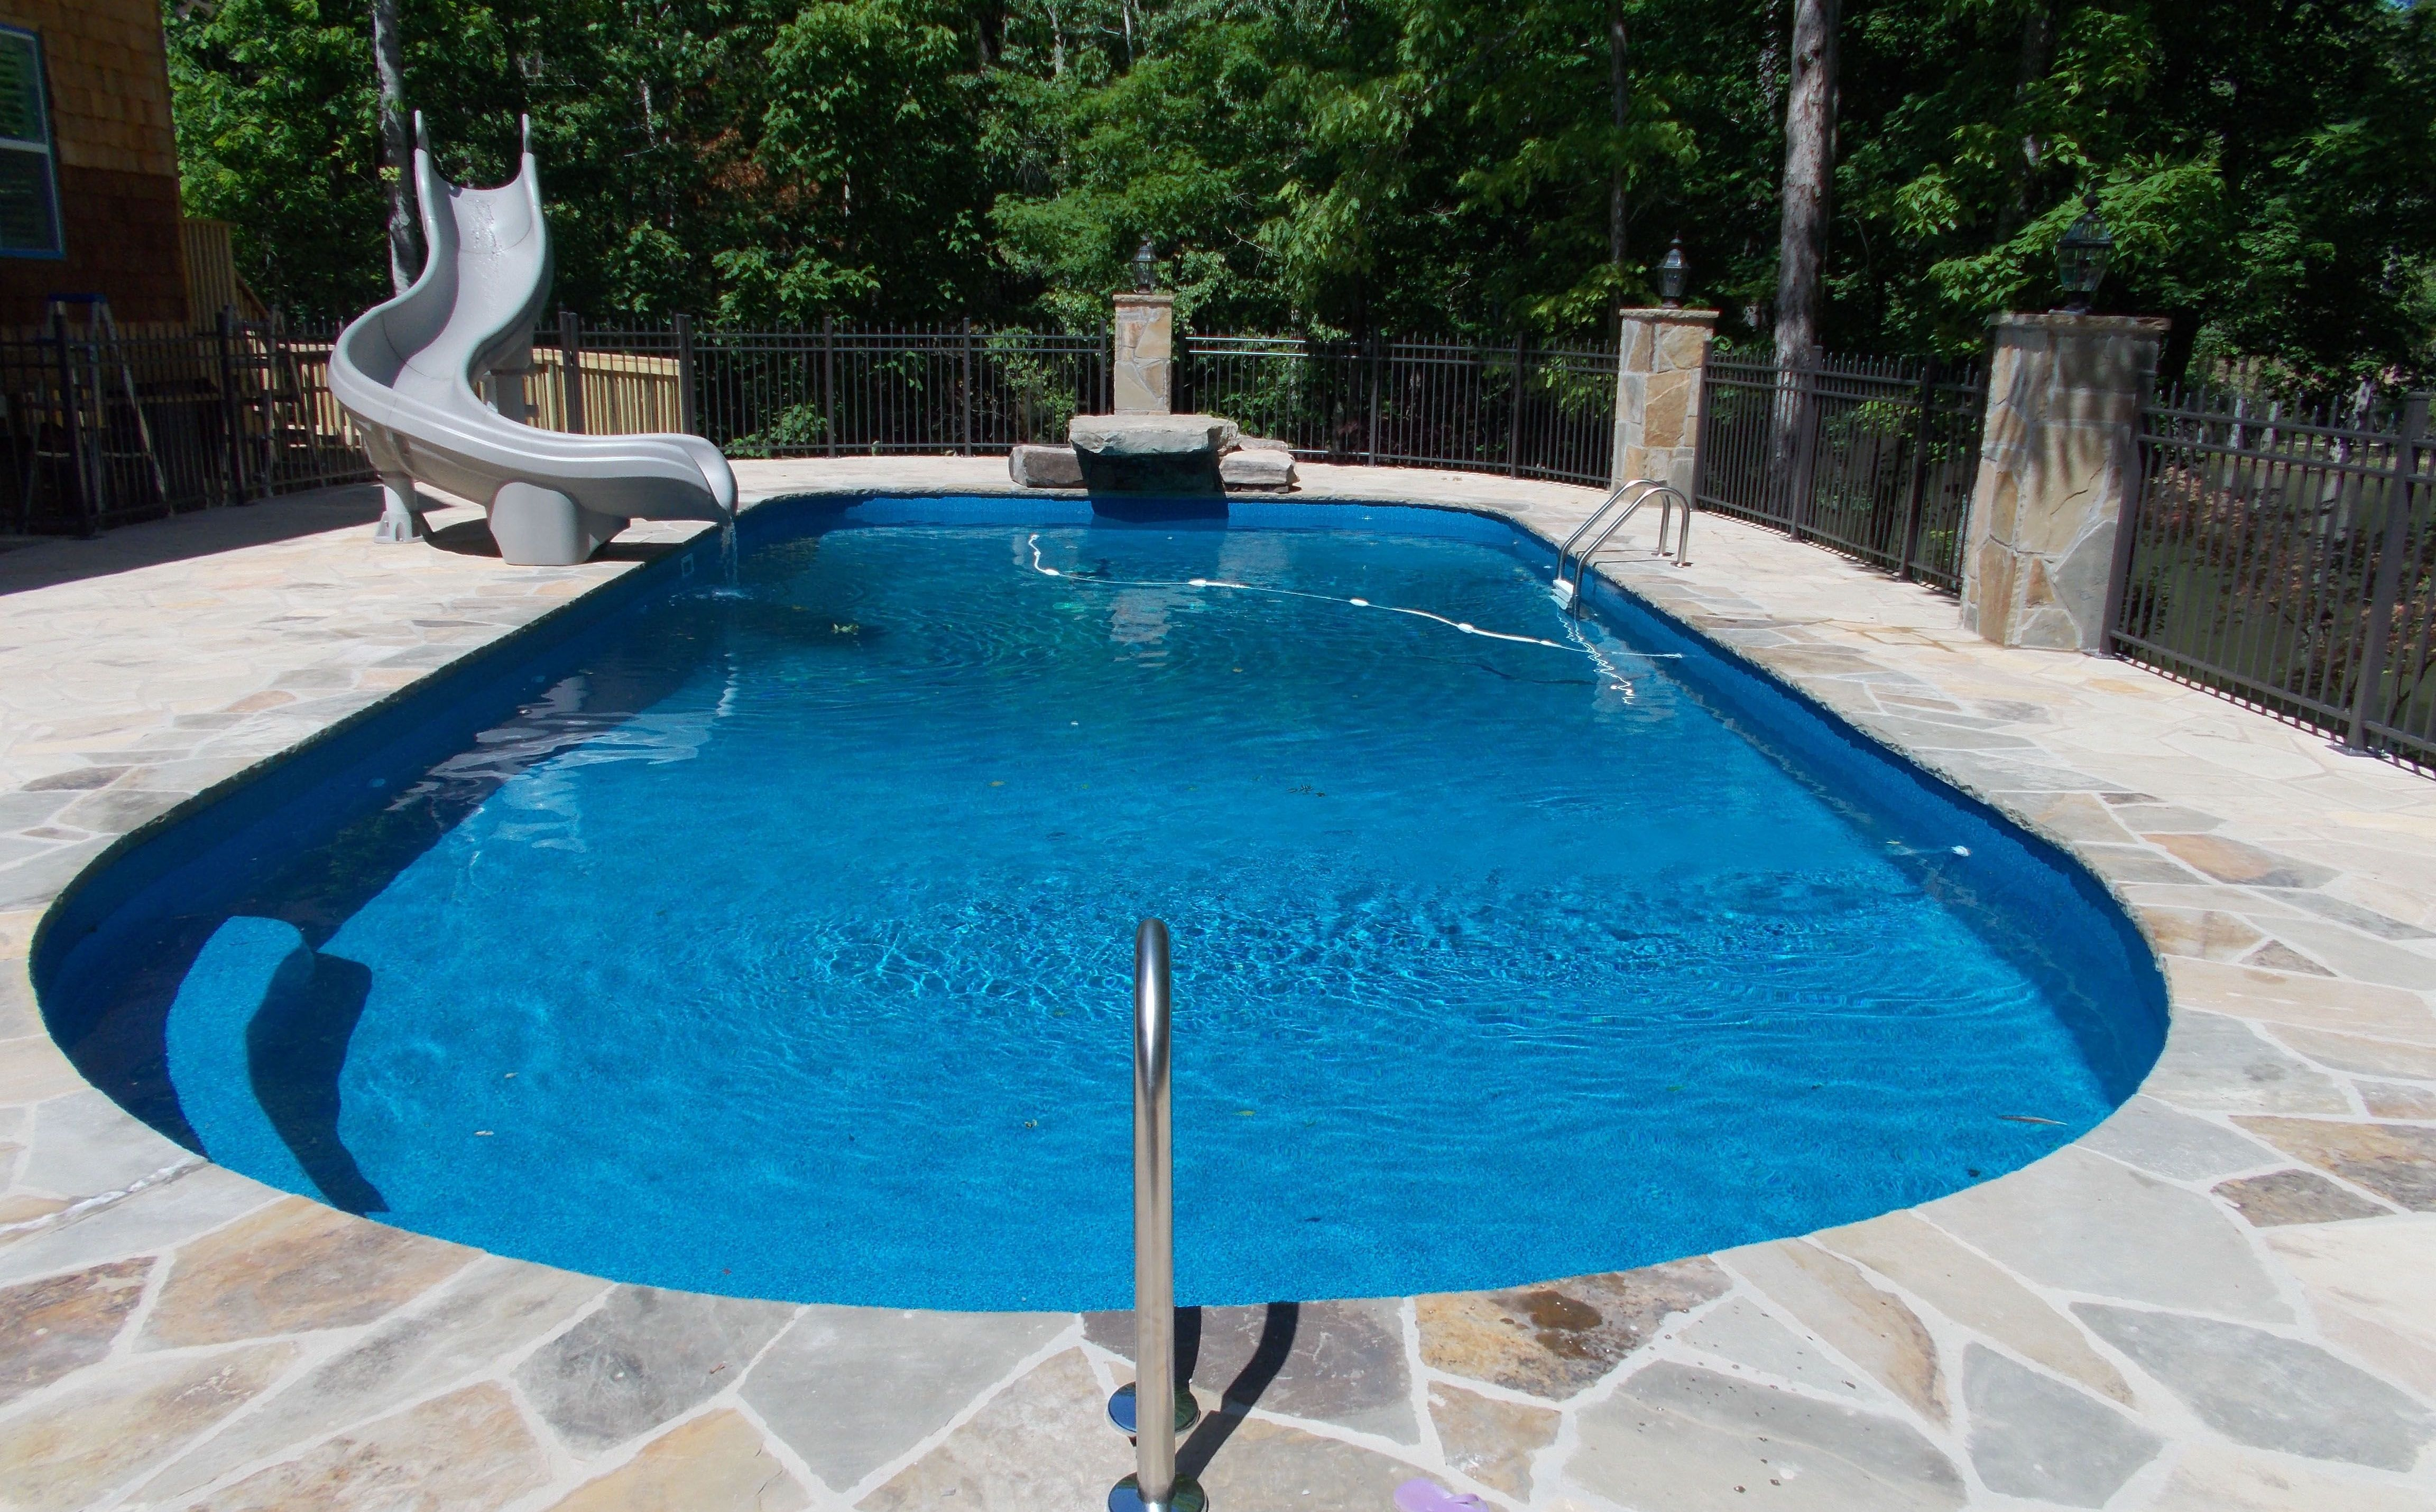 Vinyl liner pool construction columbus georgia for Pool design mistakes